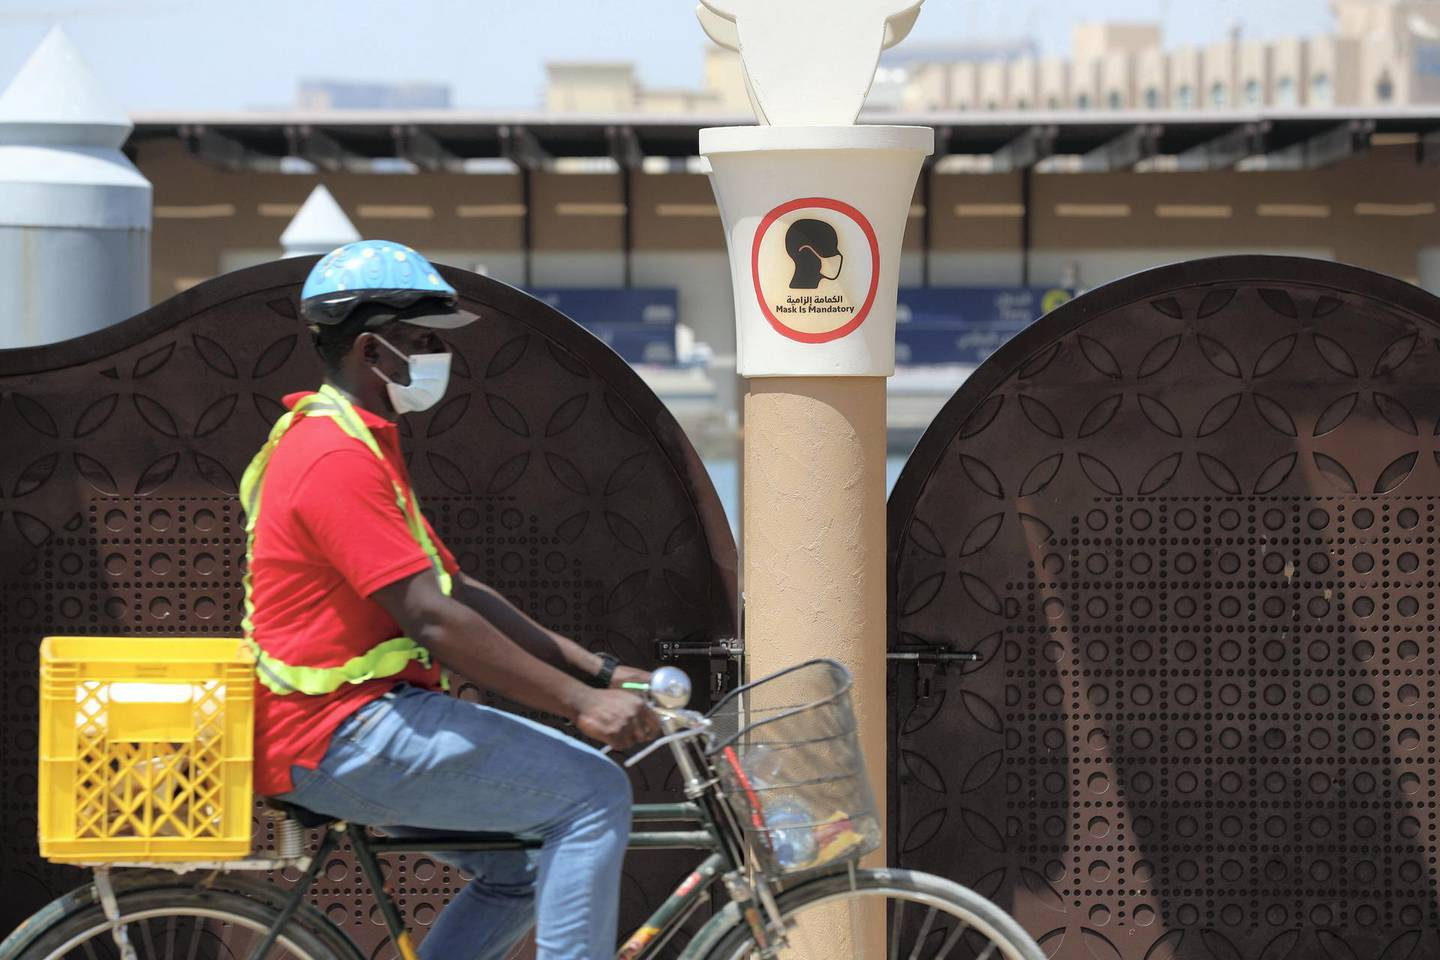 A man on a bike wears a mask to protect him from Covid-19 in Bur Dubai on June 1st, 2021. Chris Whiteoak / The National.  Reporter: N/A for News